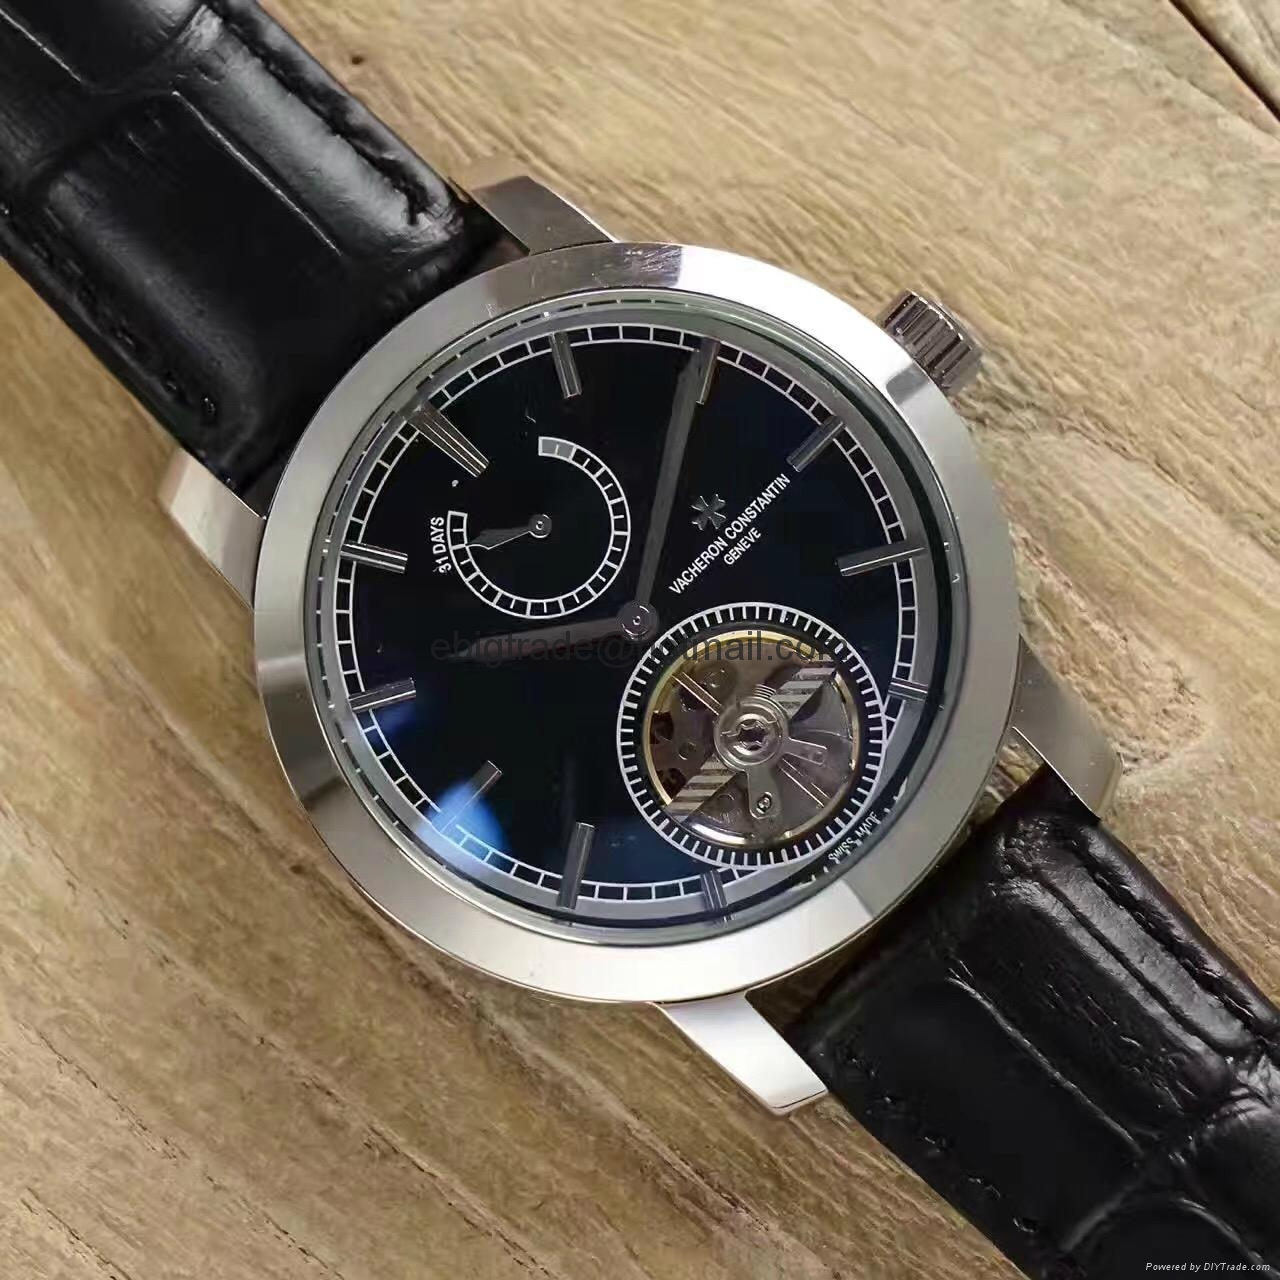 Vacheron Constantin Watch outlet